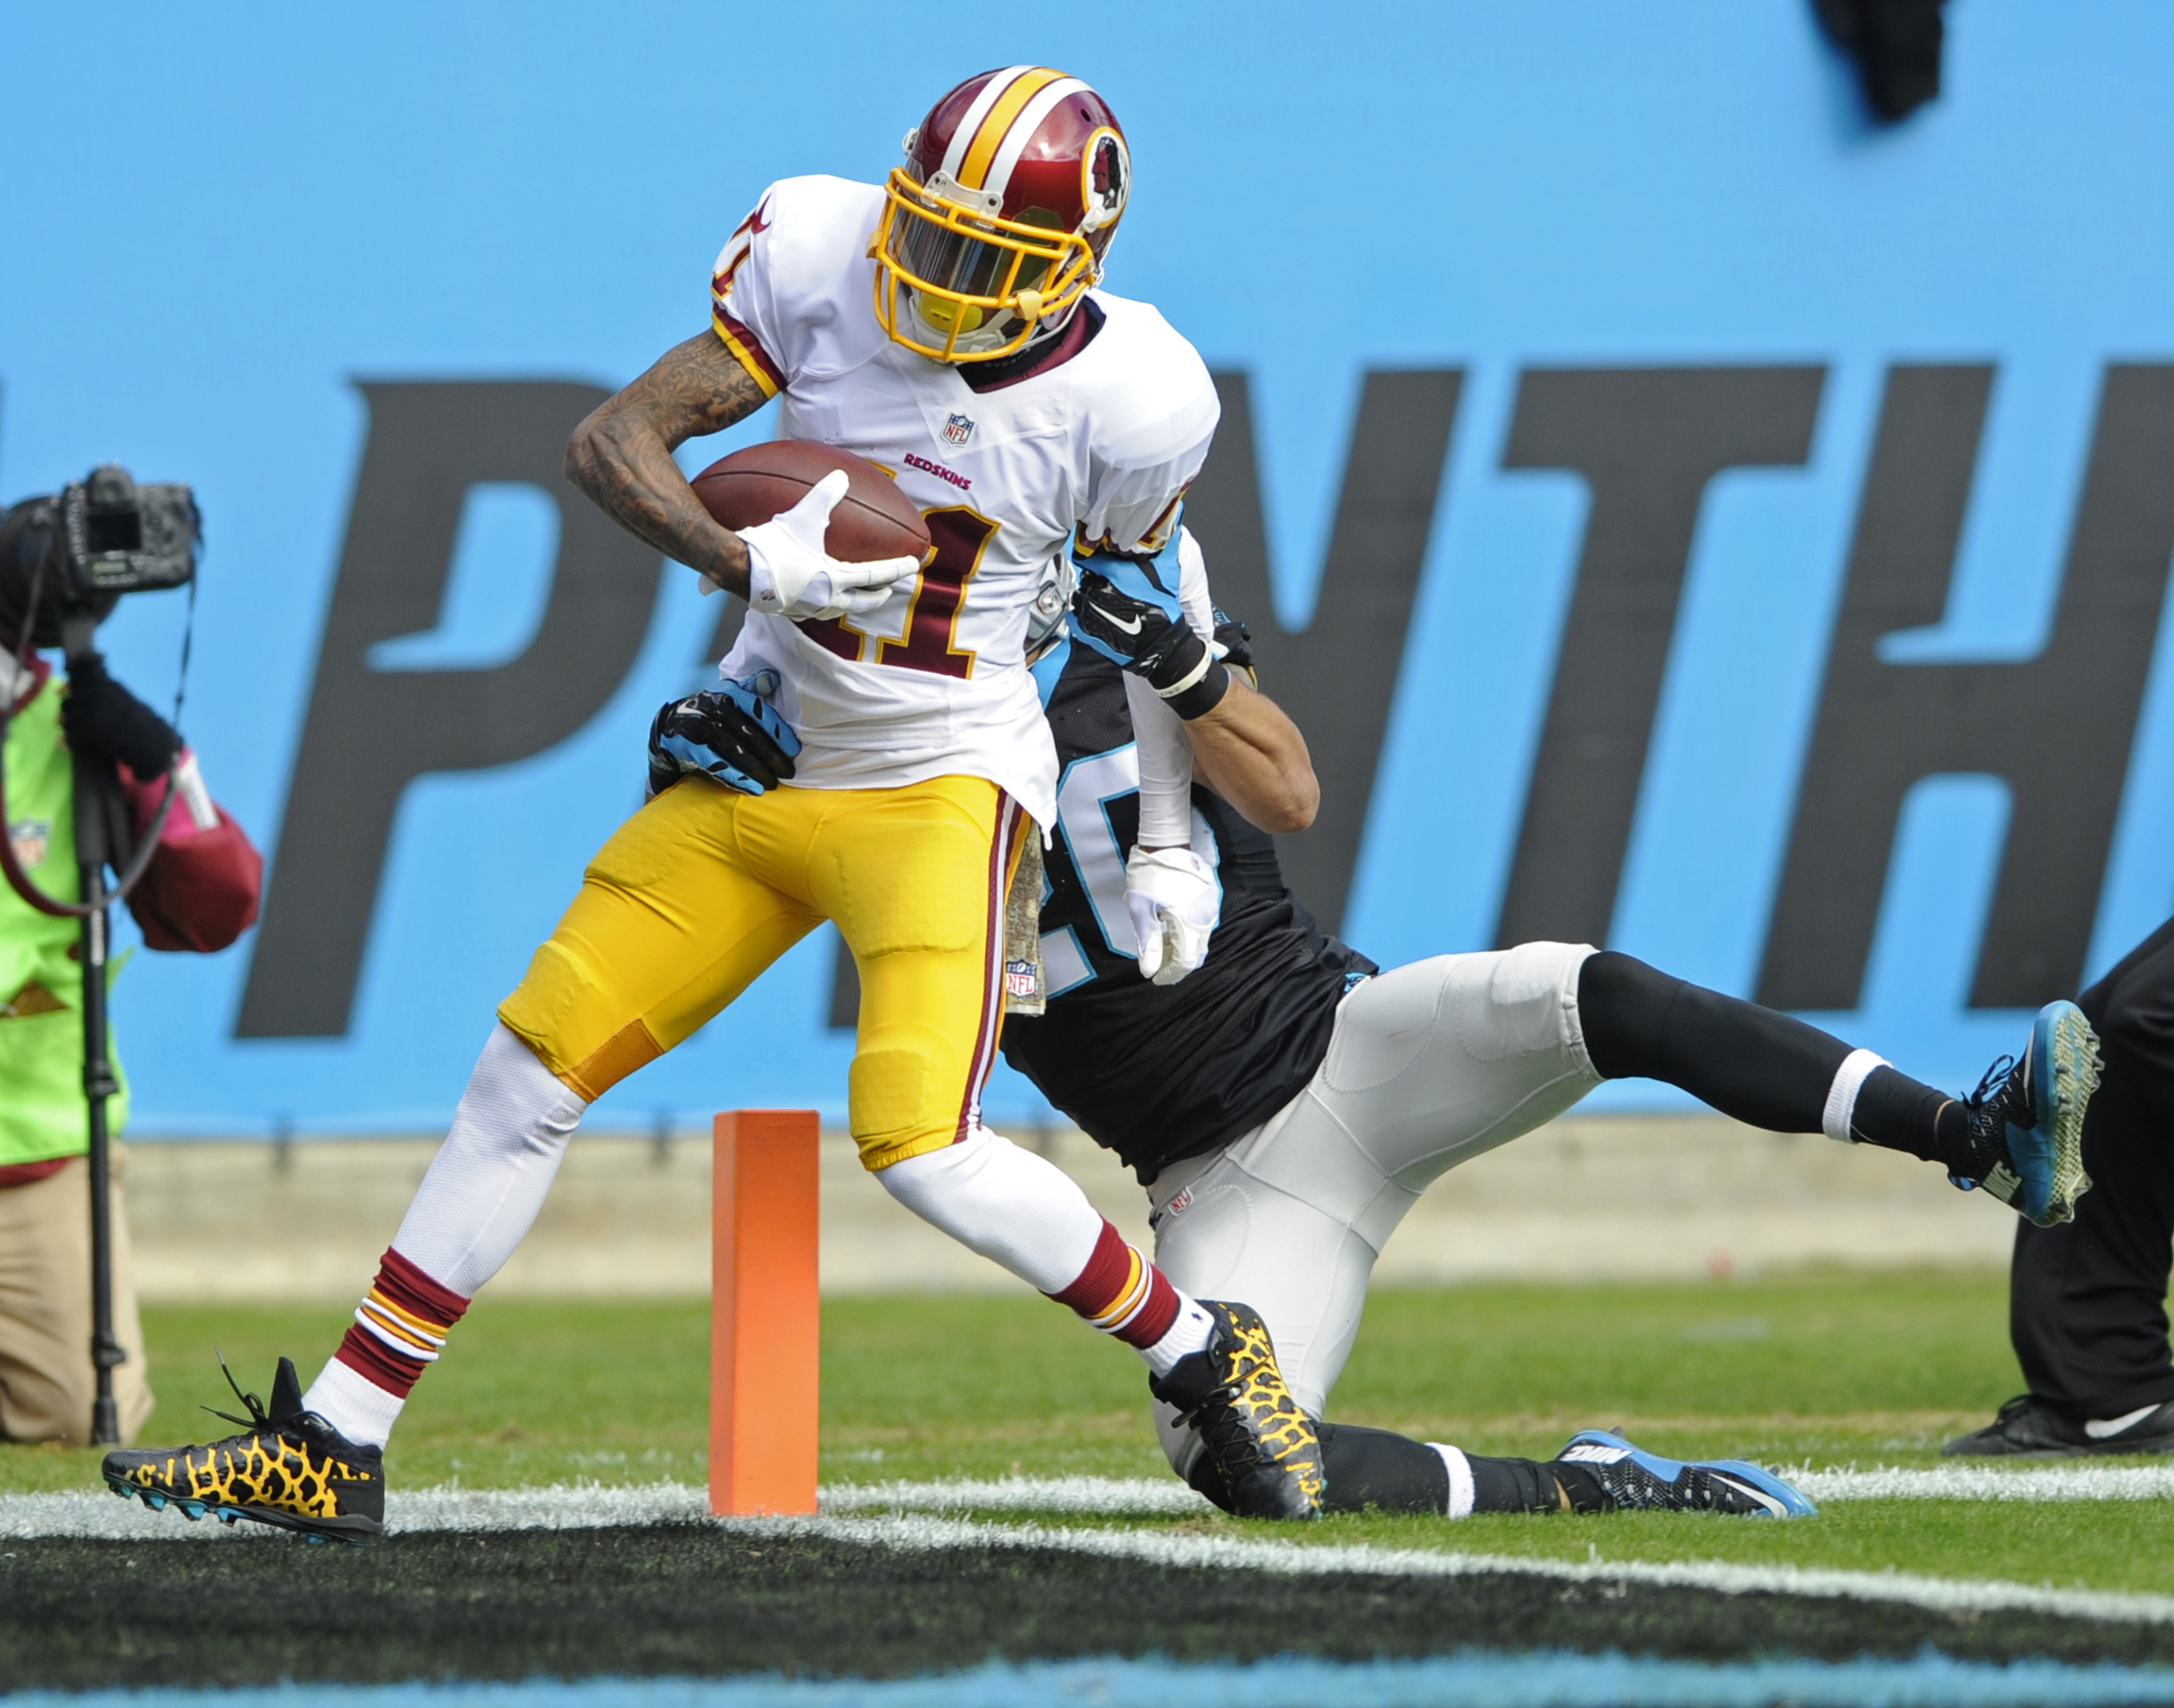 Washington Redskins' DeSean Jackson (11) runs into the end zone for a touchdown against Carolina Panthers' Kurt Coleman (20) in the first half of an NFL football game in Charlotte, N.C., Sunday, Nov. 22, 2015. (AP Photo/Mike McCarn)